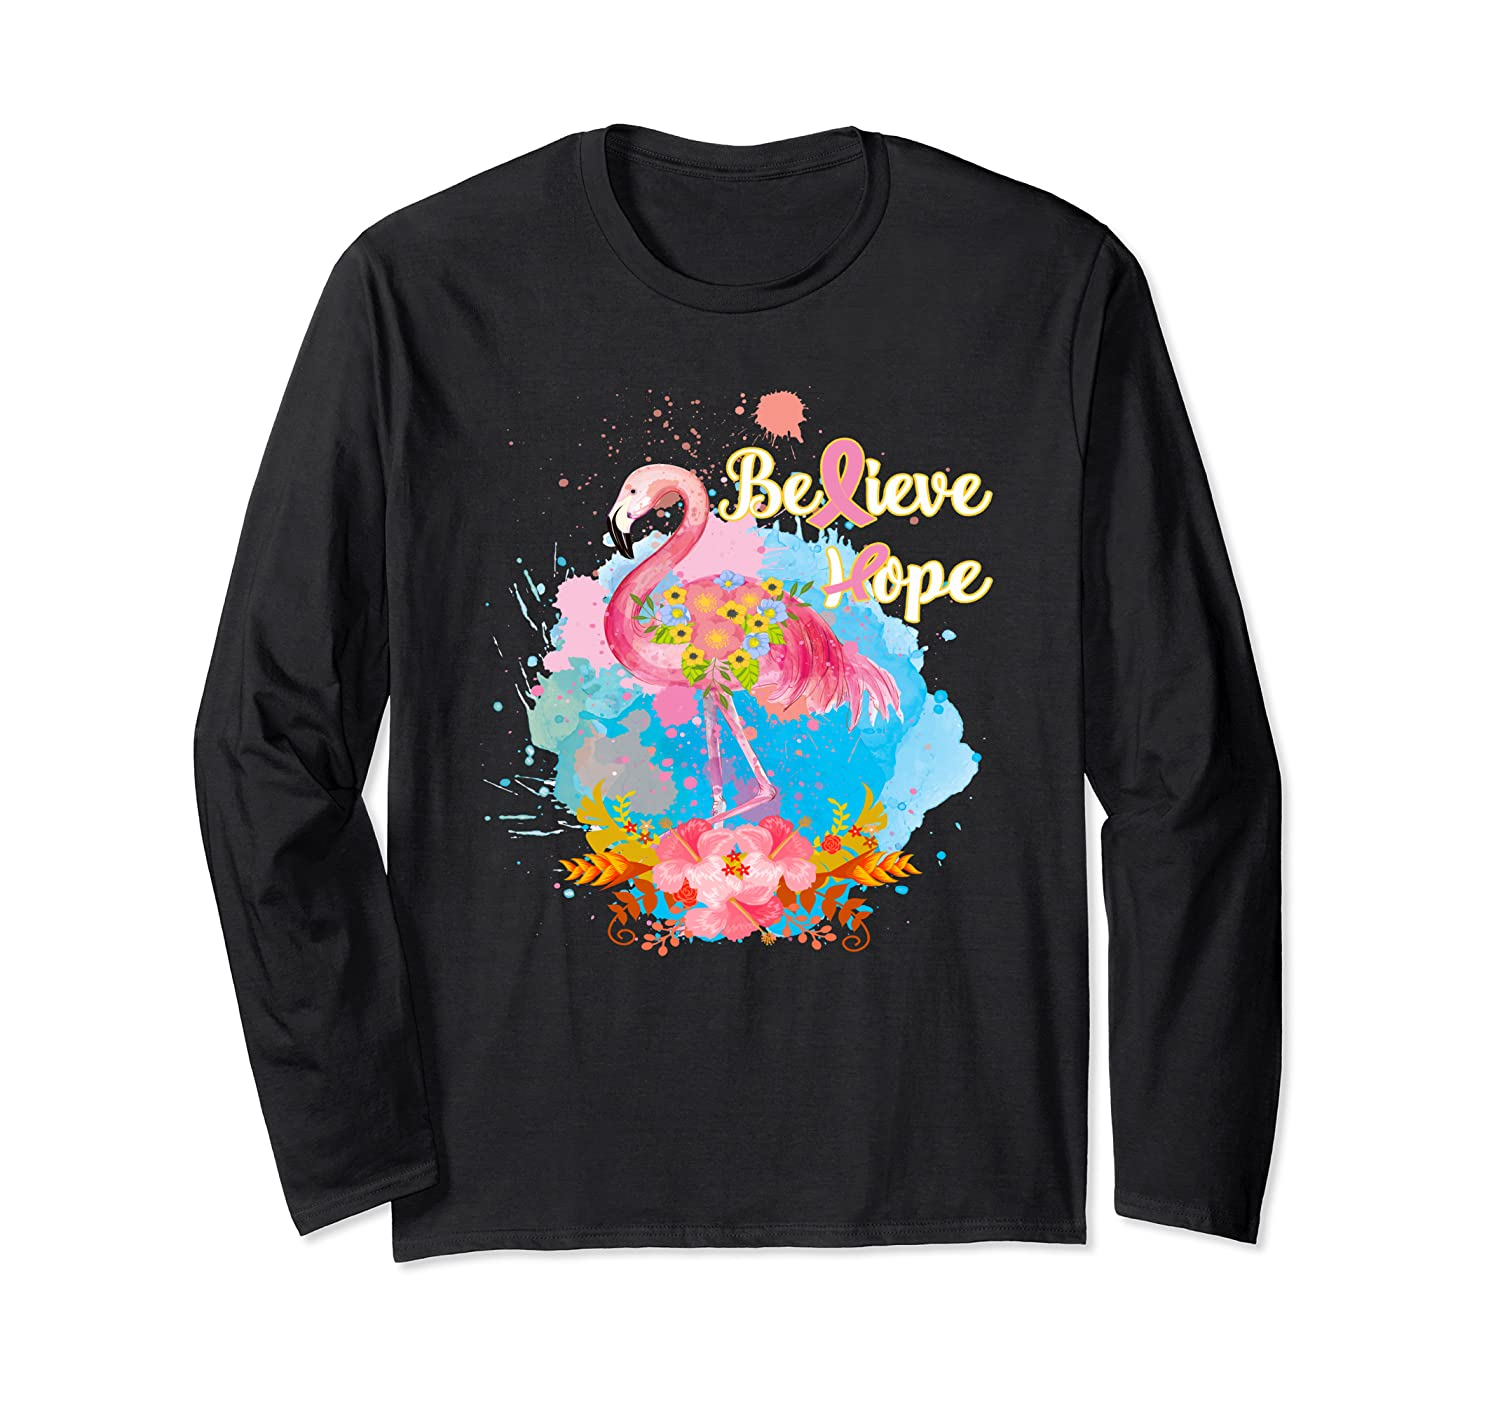 Pink Flamingo Believe Hope Breast Cancer Awareness Month T Shirt